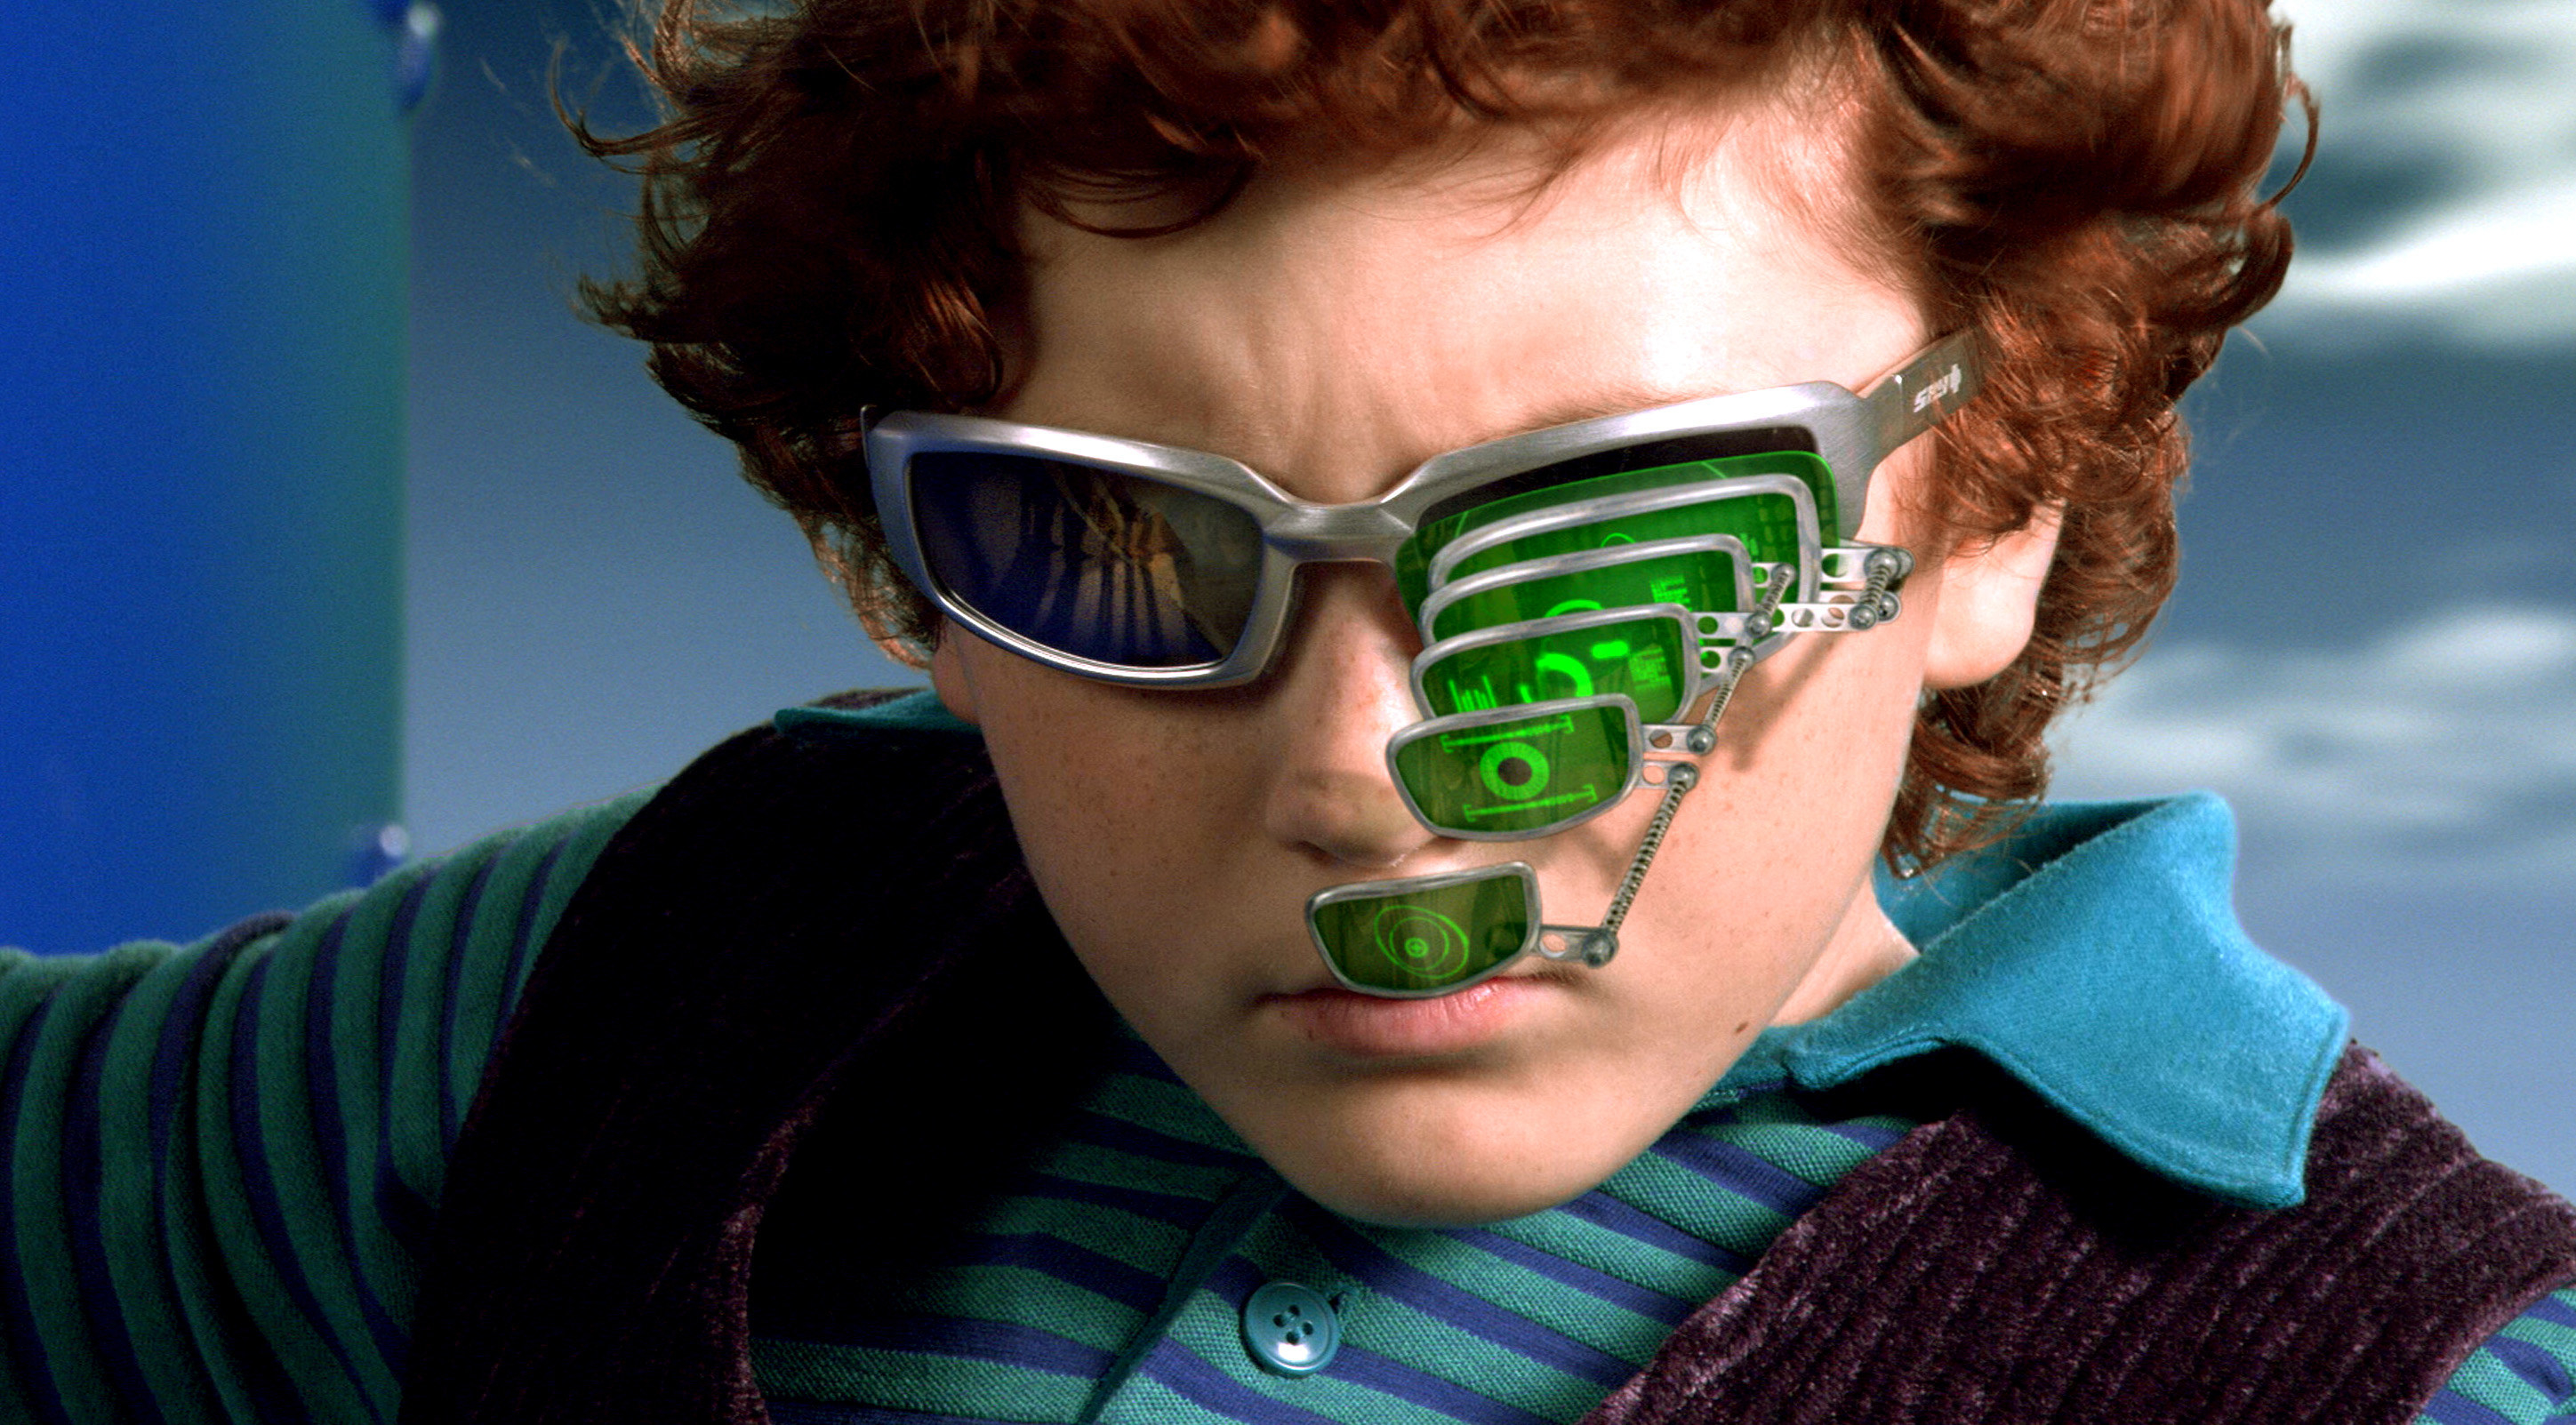 Juni Cortez wearing his spy glasses